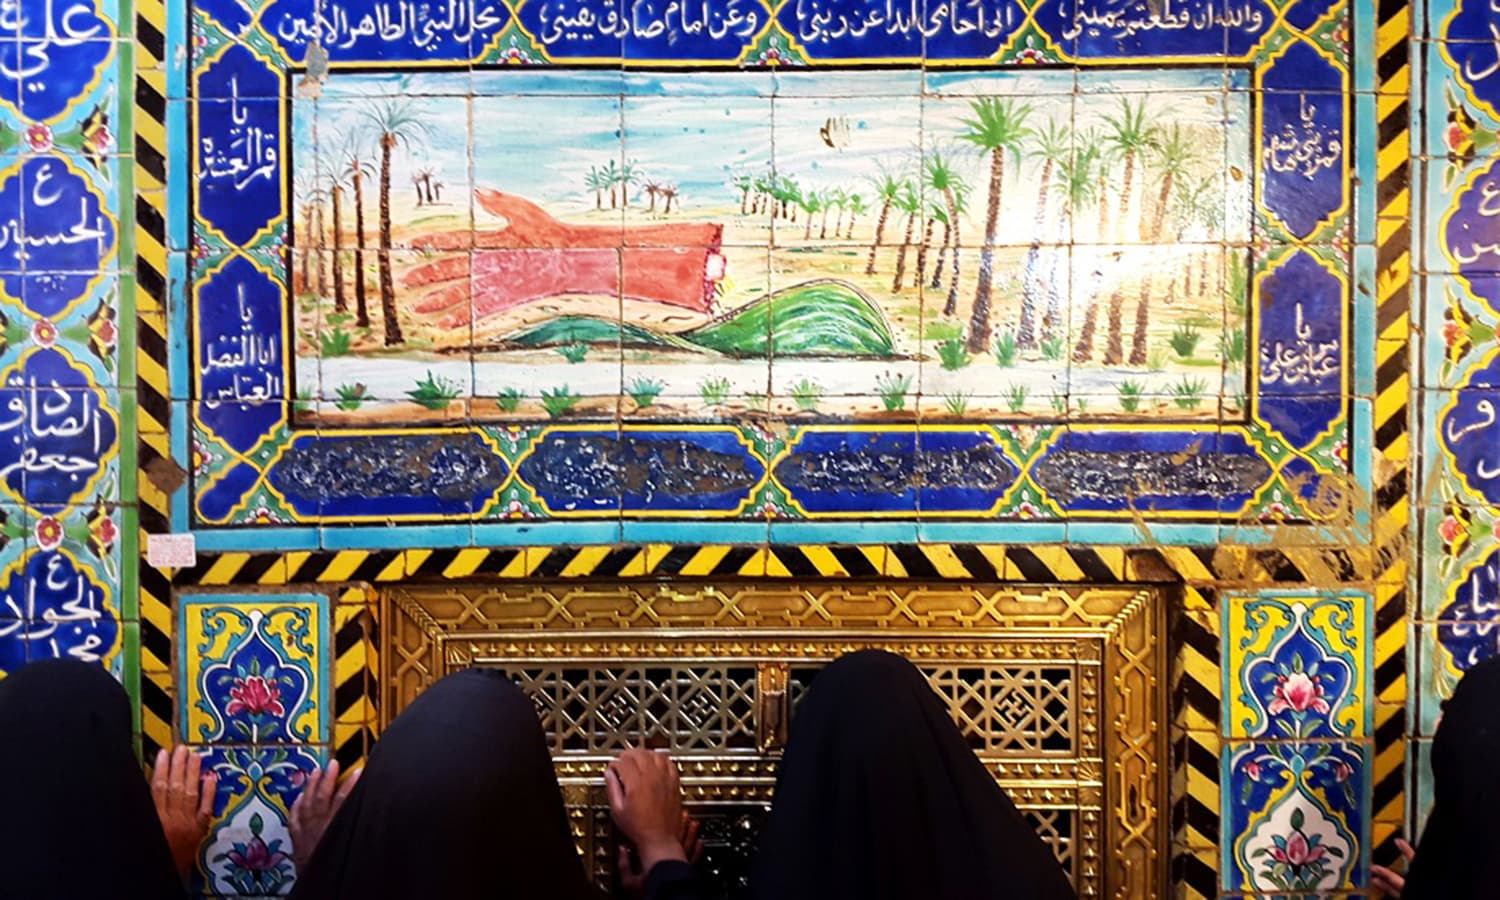 The place where Yazid's forces ambushed and showered Hazrat Abbas with arrows, cutting off his right hand in which he was carrying the water skin filled with water from a dyke of the Euphrates, to take to the children of Imam Hussain. Abbas put the water skin on his left shoulder and continued on his way but his left arm was also cut off. He continued holding the bag with his teeth. The army of ibn Sa'ad started shooting arrows at him, one arrow hit the water skin and water poured out of it.